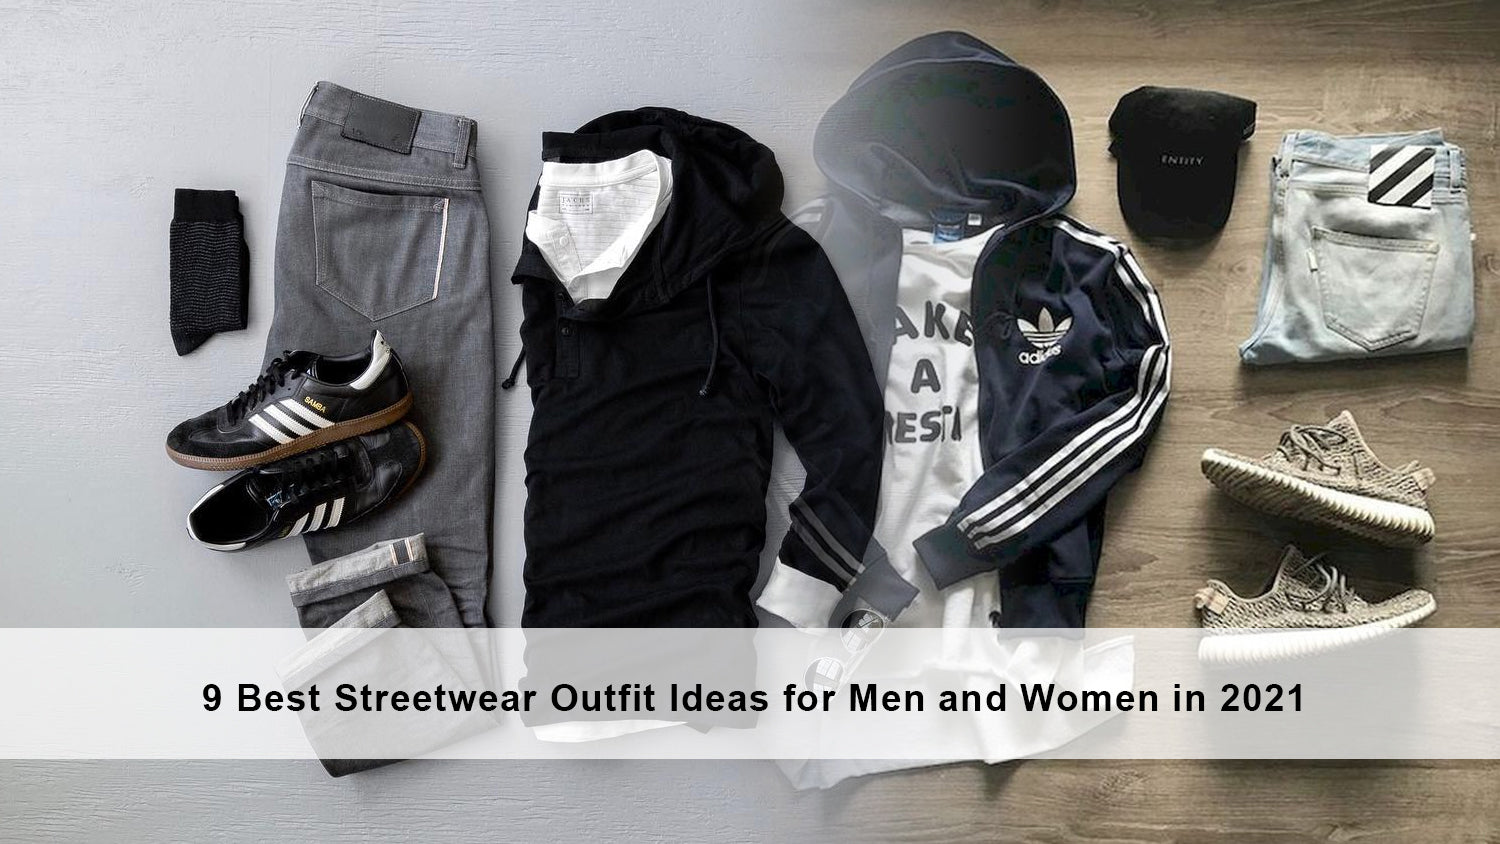 9 Best Streetwear Outfit Ideas for Men and Women in 2021